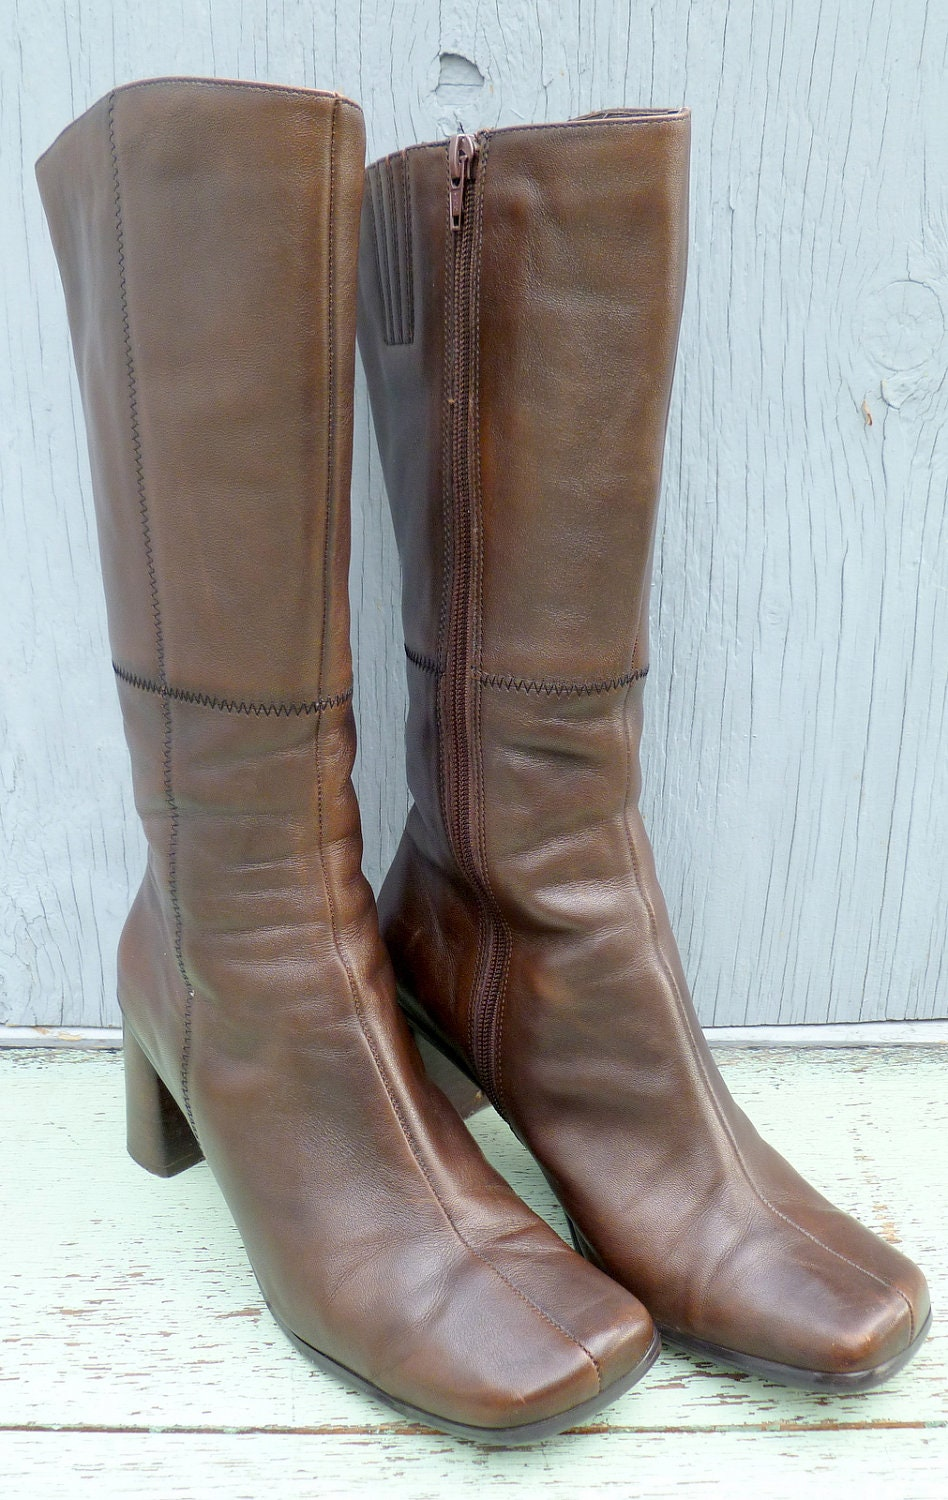 brown leather high heel vintage boots